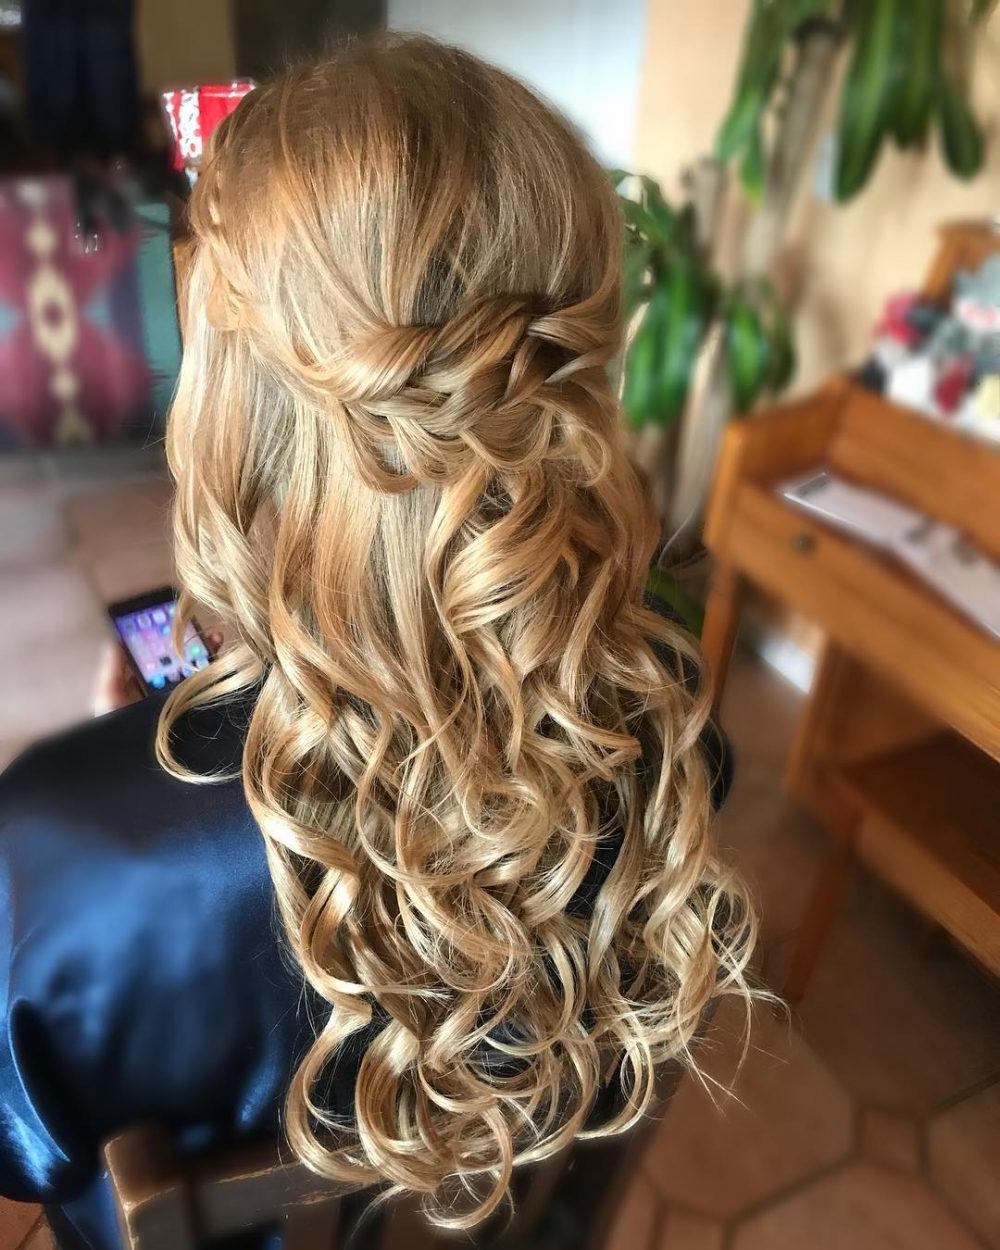 24 Gorgeous Wedding Hairstyles For Long Hair In 2019 Throughout Fashionable Large Curl Updos For Brides (View 10 of 20)